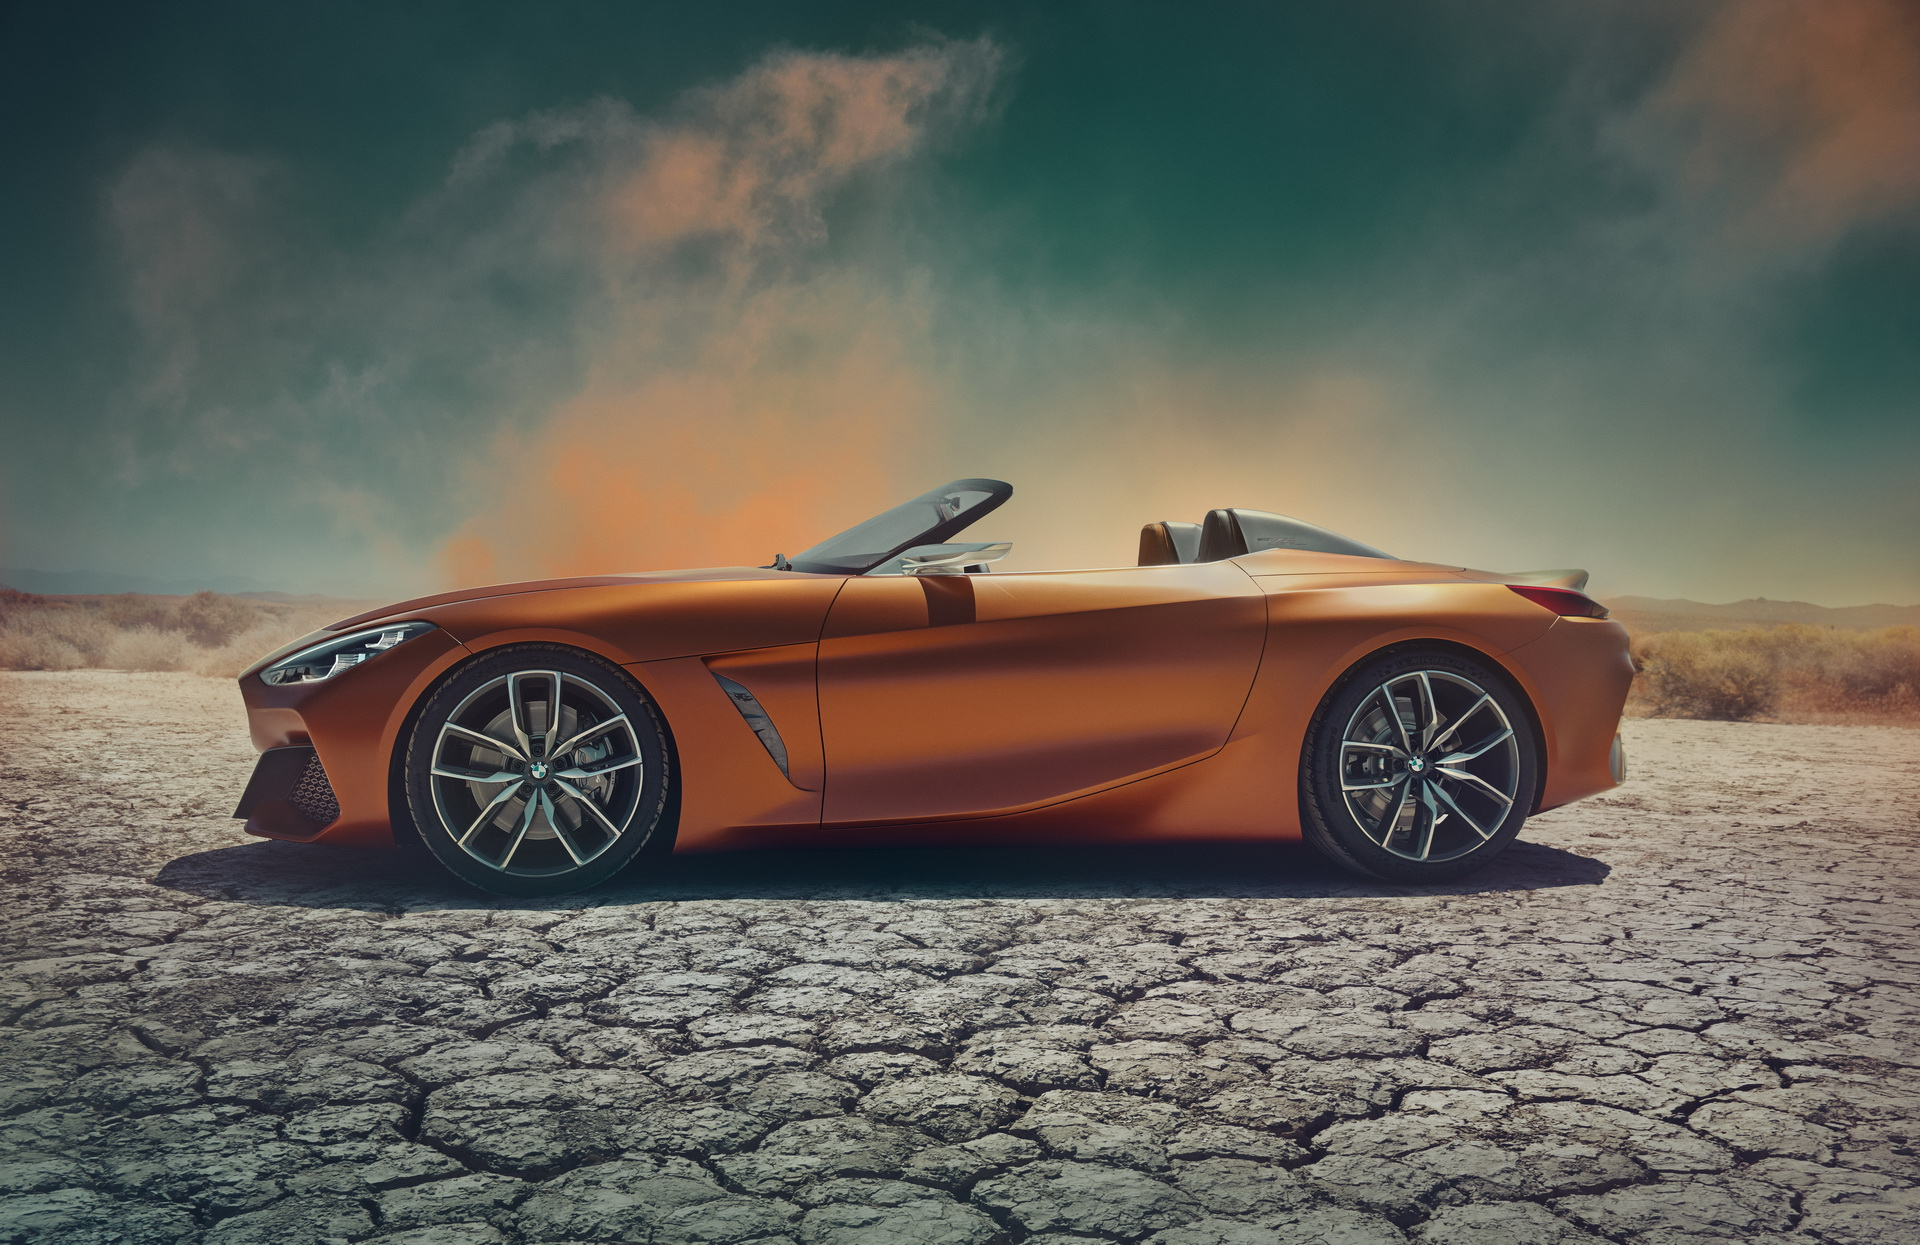 2019 bmw z4 reveal scheduled for summer, debuts at 2018 paris motor